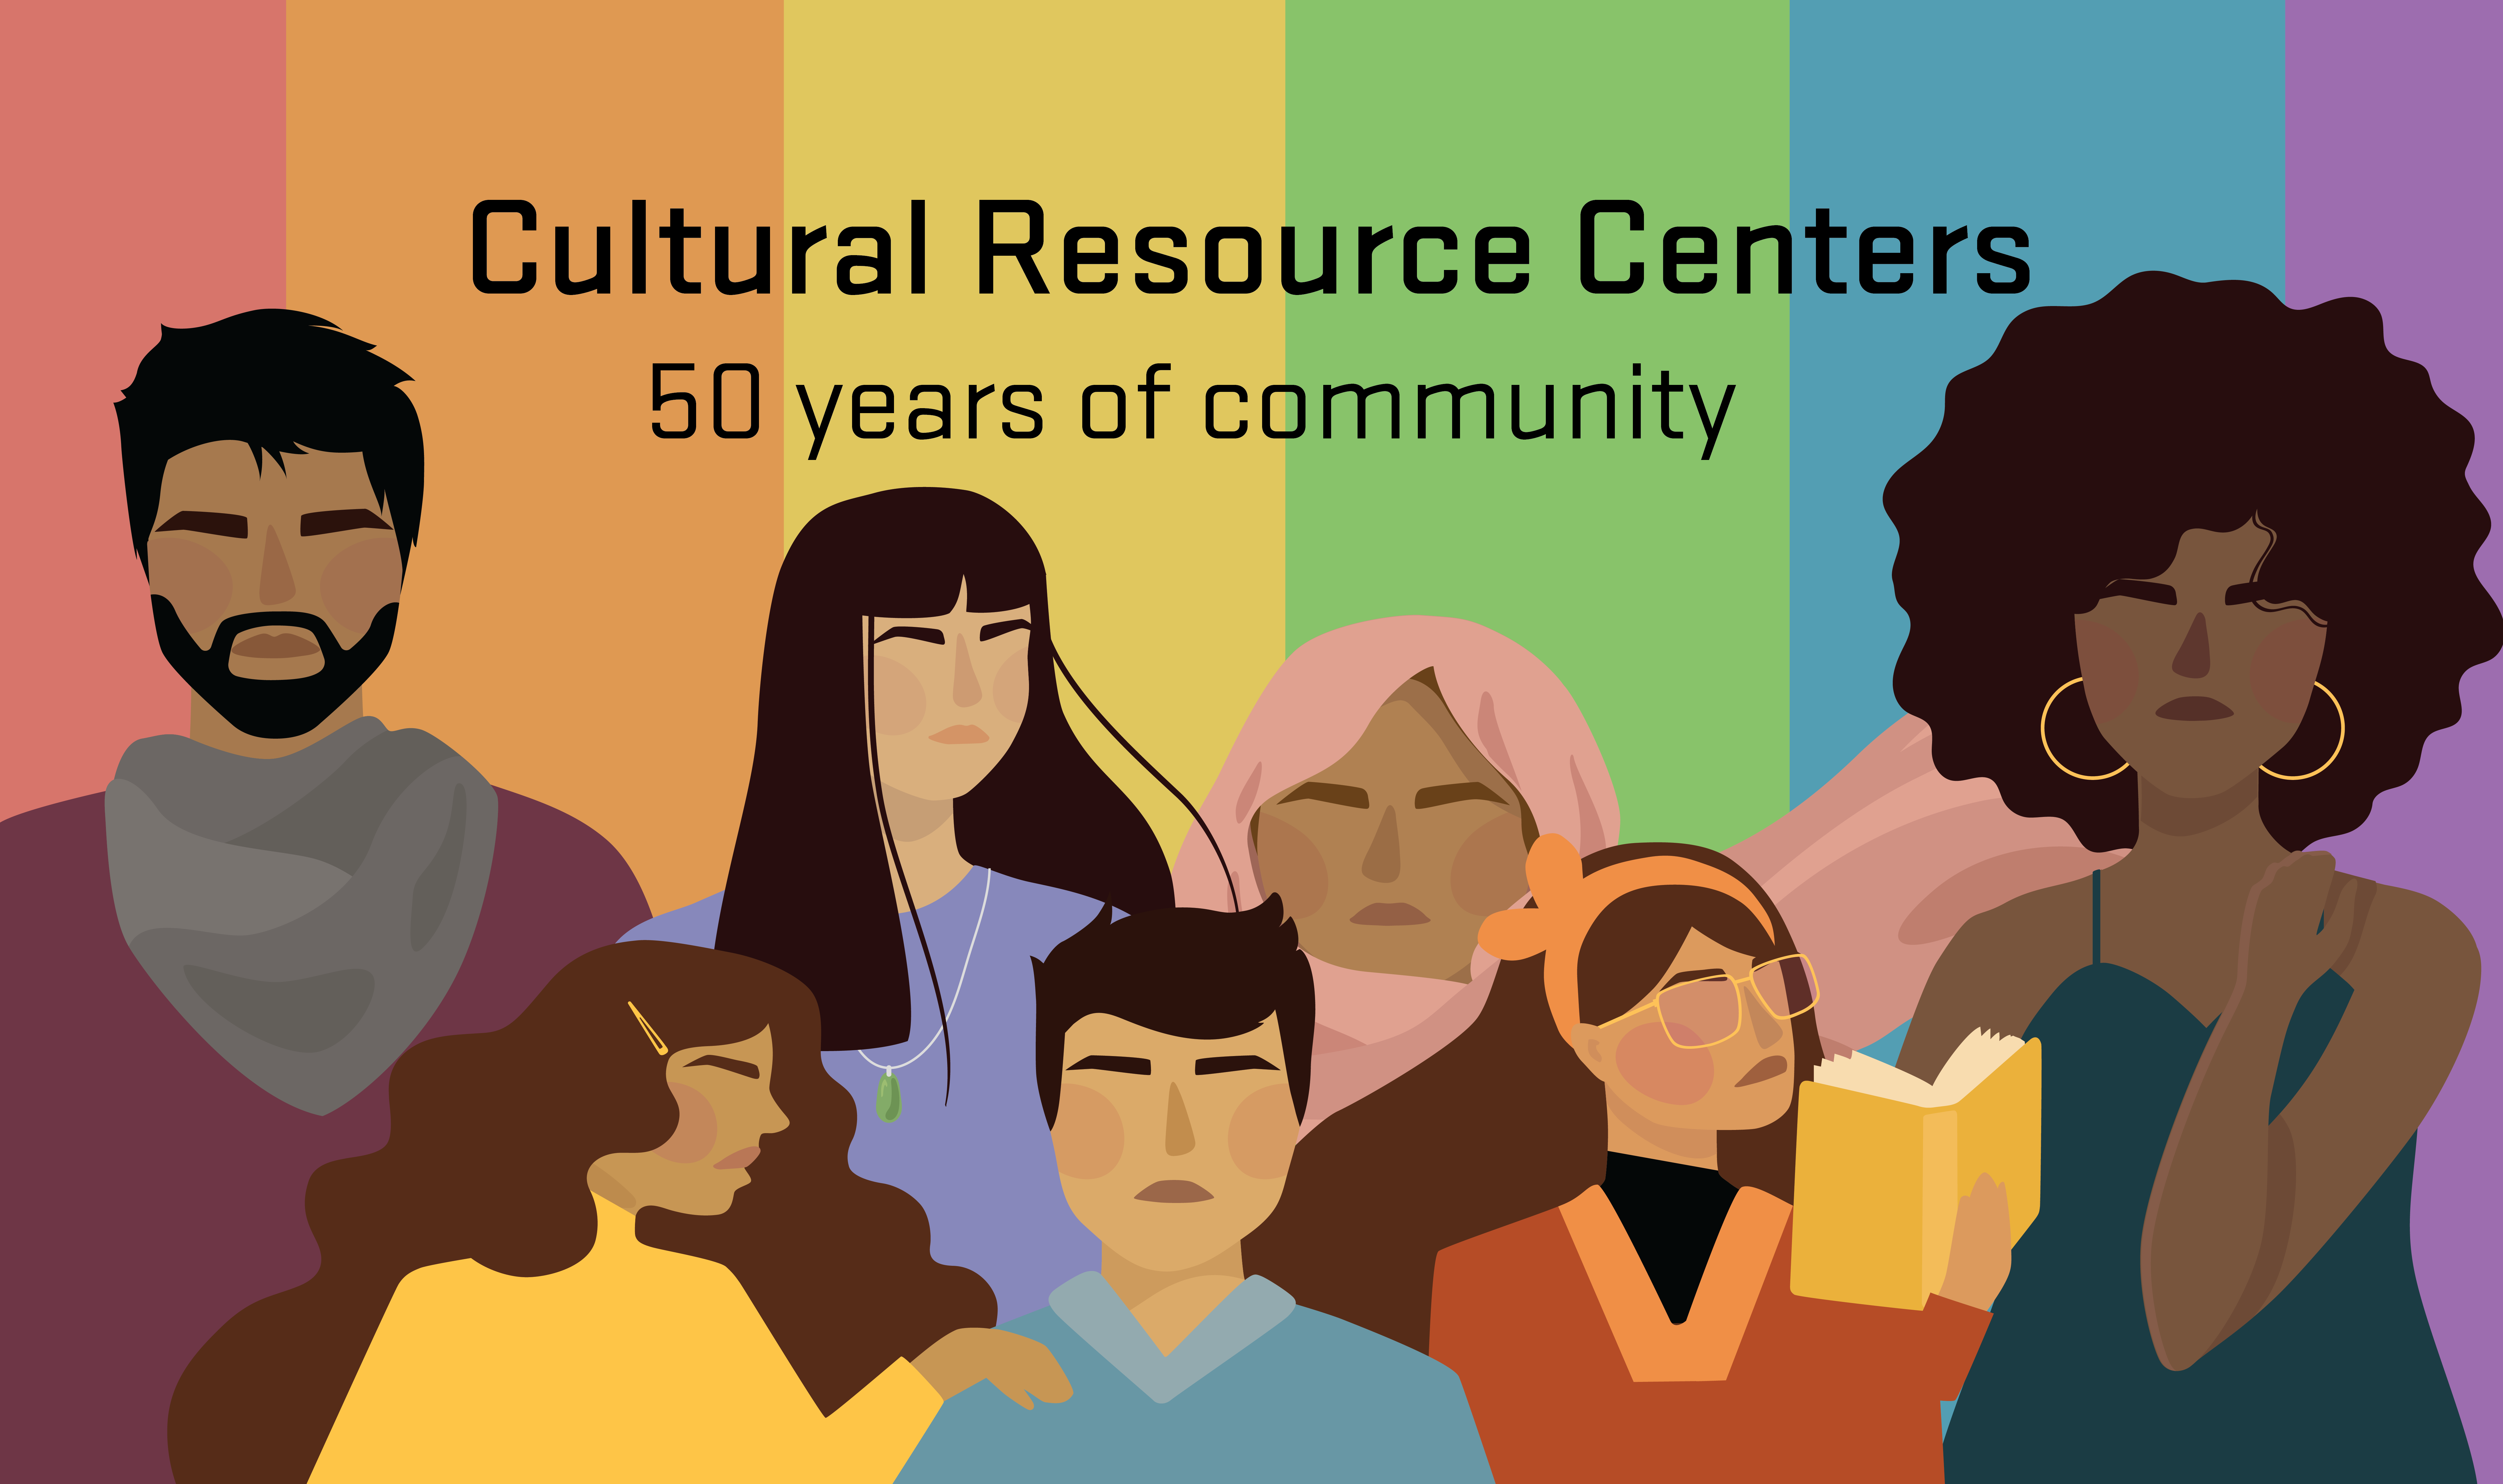 """image depicting individuals of various backgrounds against a rainbow colored background. Text reads: """"Cultural Resource Centers. 50 years of community"""""""